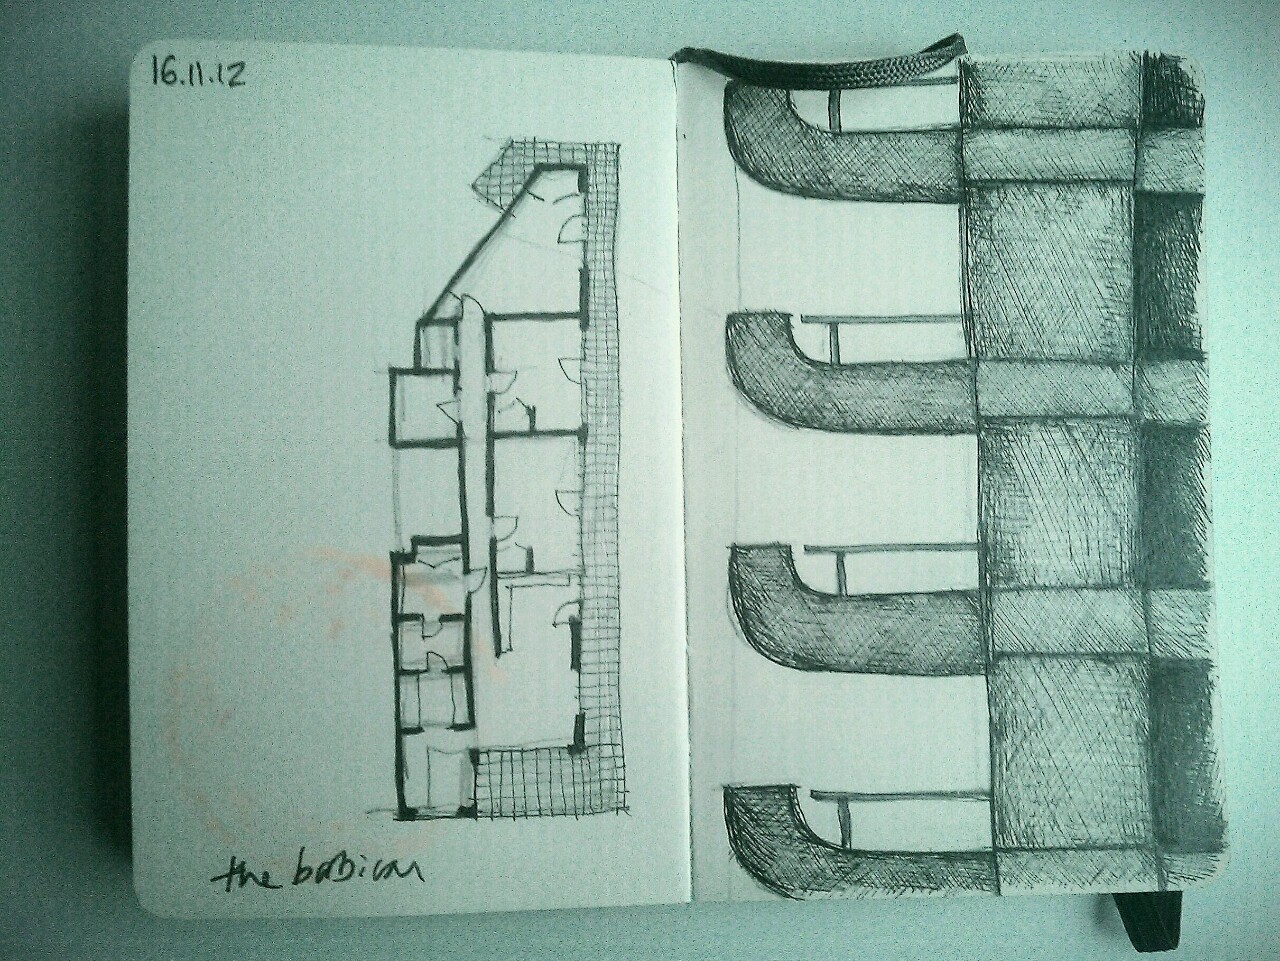 365 drawings later … day 290 … the barbican [lauderdale tower]